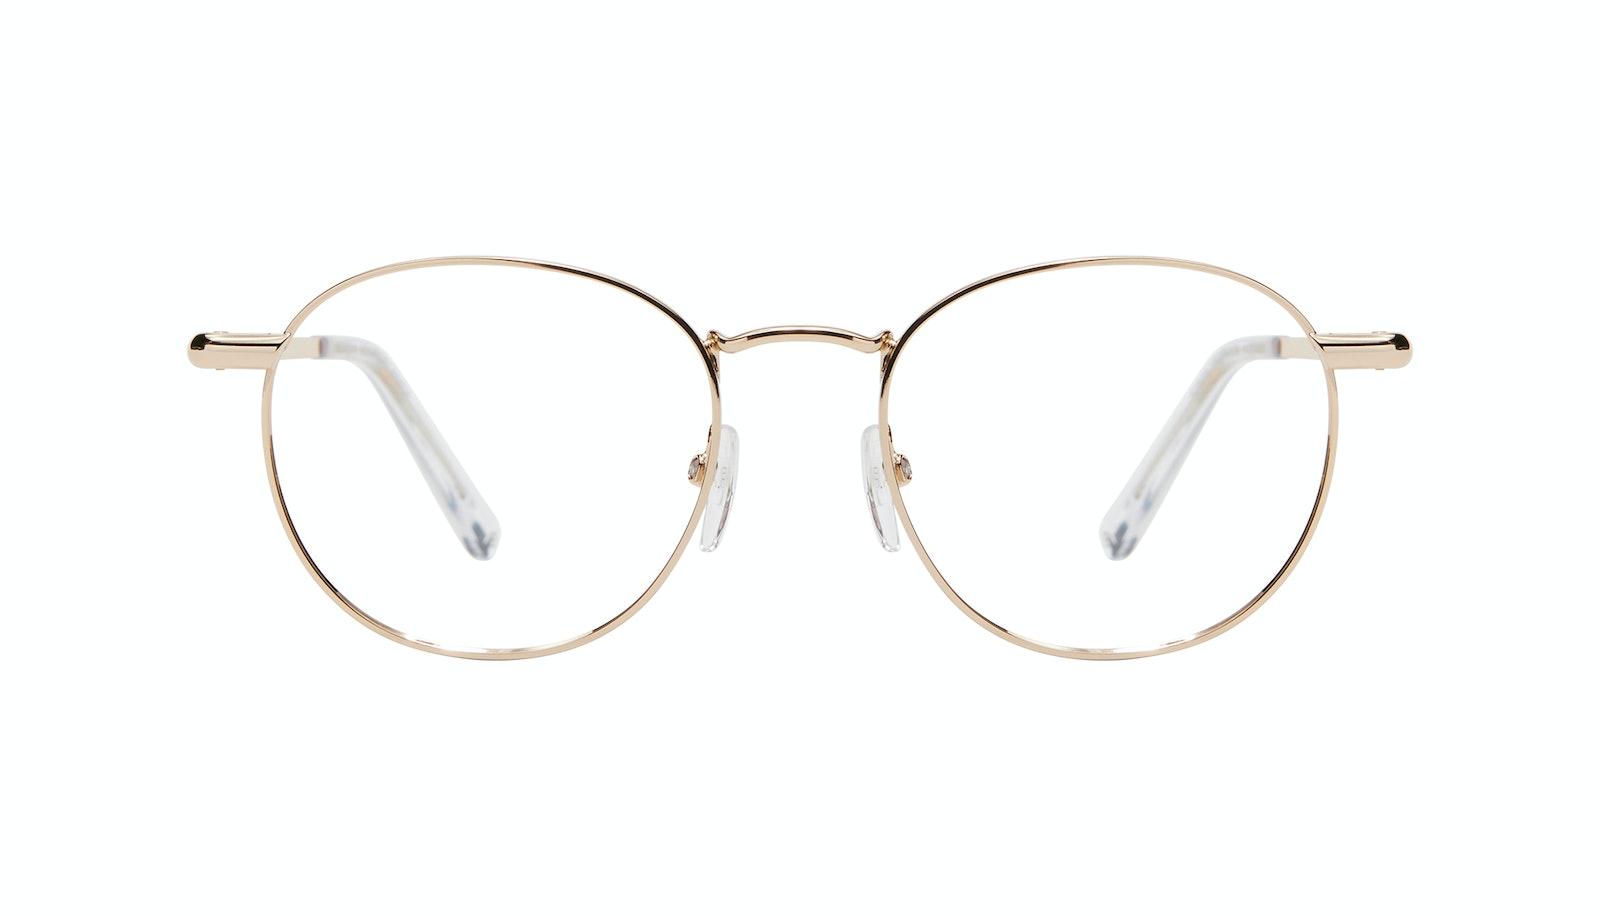 Affordable Fashion Glasses Round Eyeglasses Women Divine M Gold